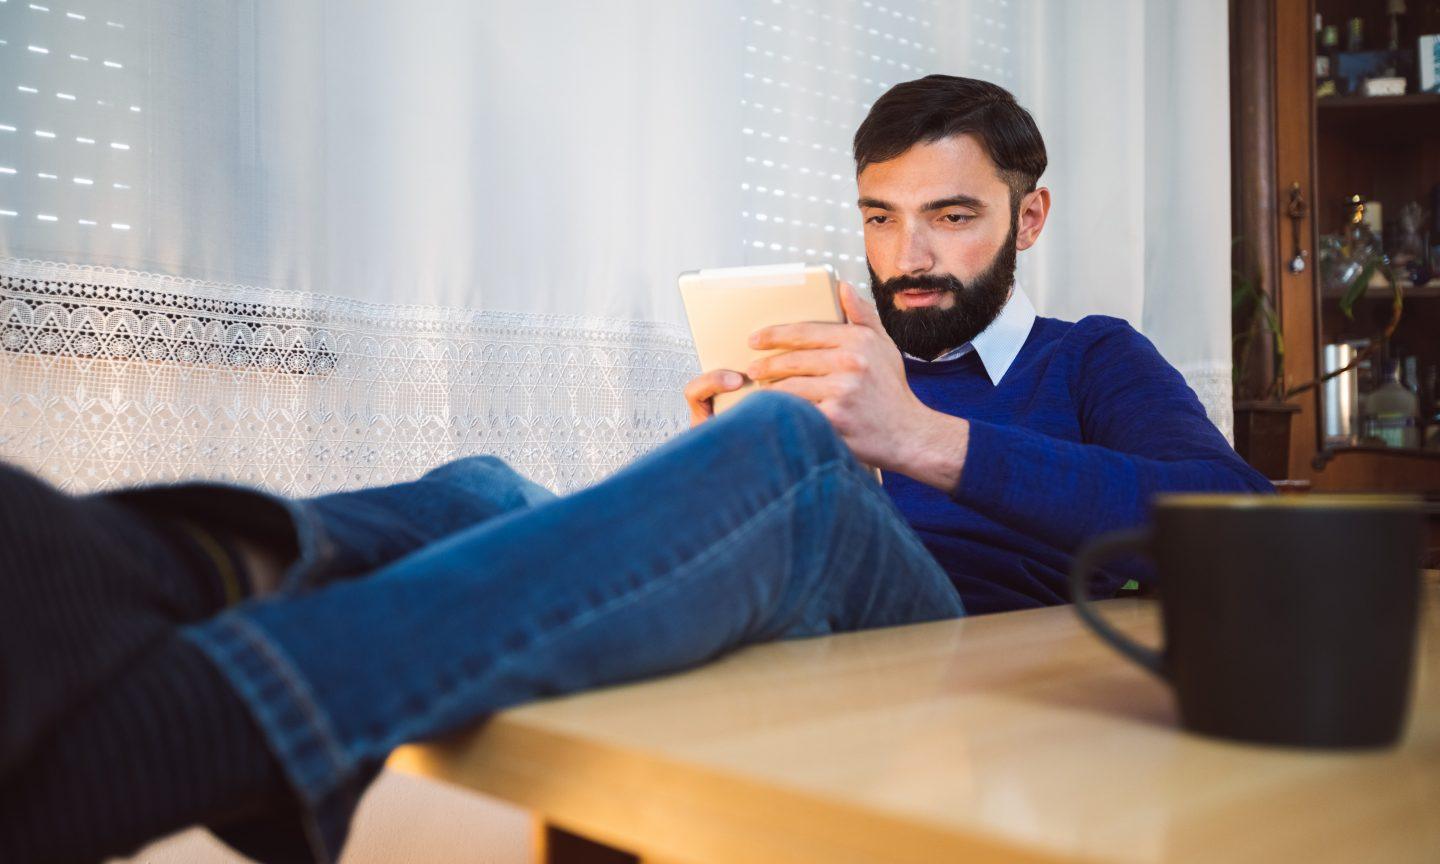 Savings Rates Are Low. Here's What To Do - NerdWallet